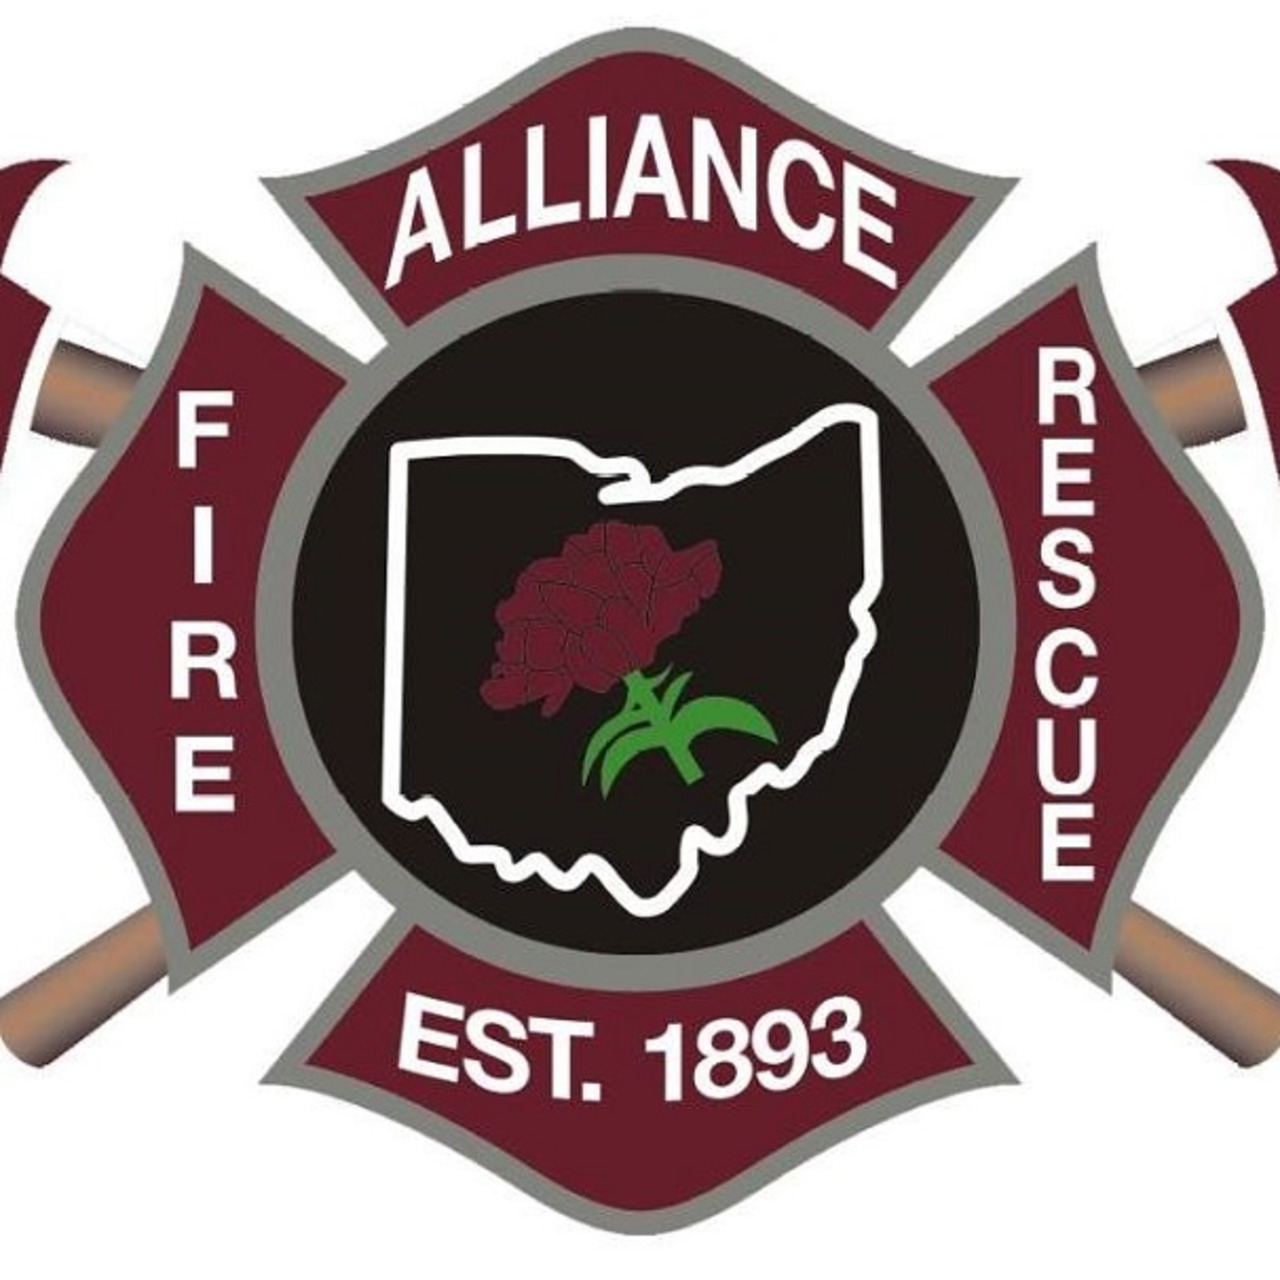 Goof Forces Alliance OH to Redo Firefighter Test